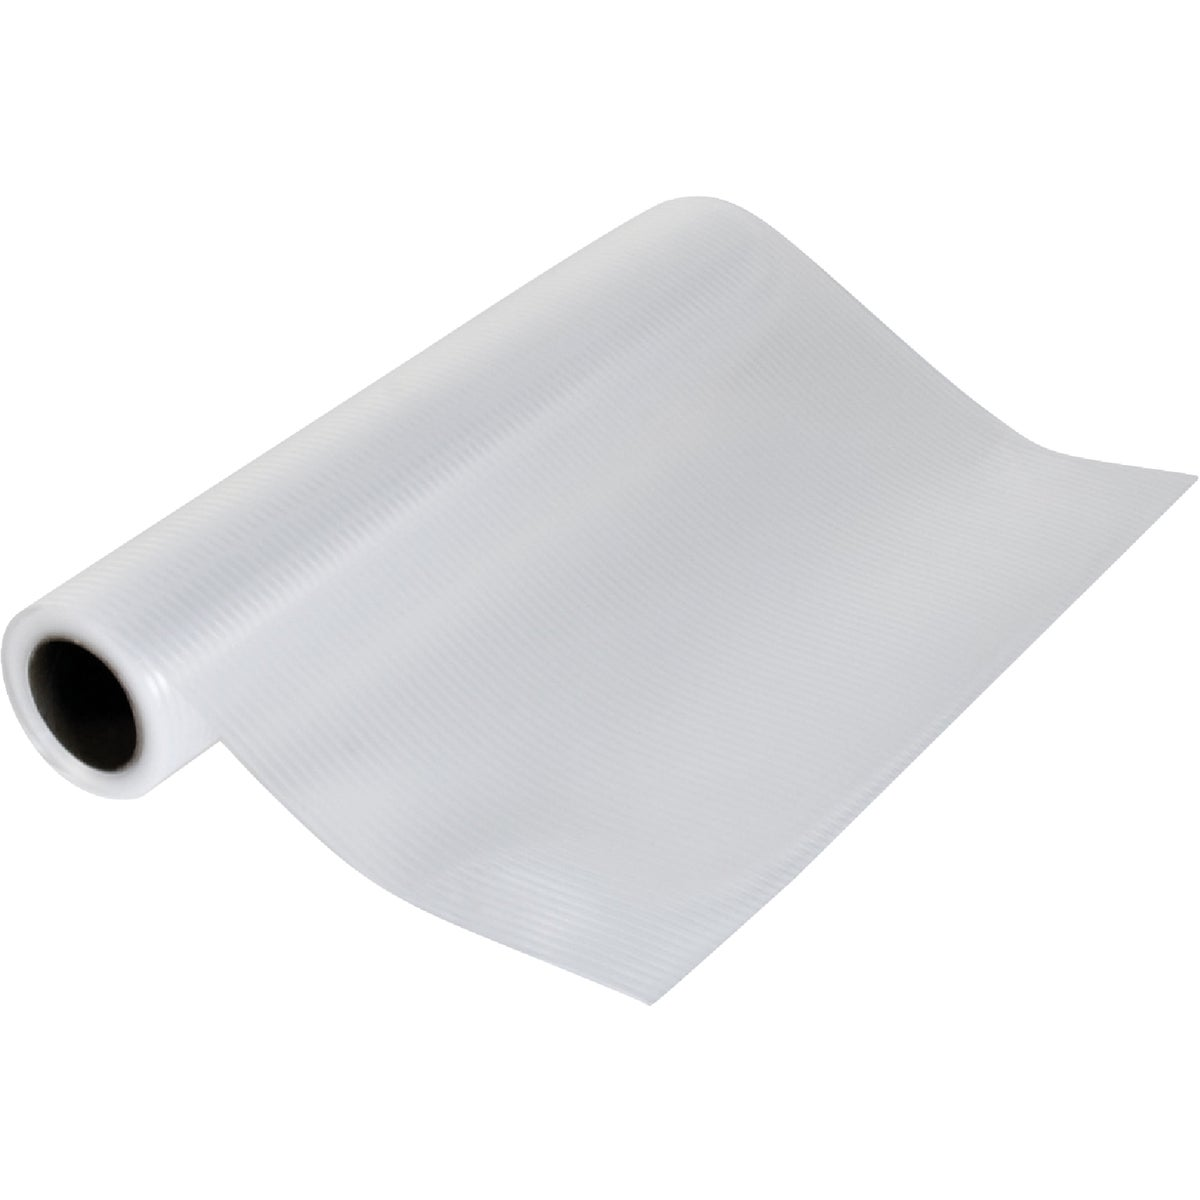 """20""""X4' CLEAR RIBED LINER - 06F-C8Q01-01 by Kittrich Corp"""